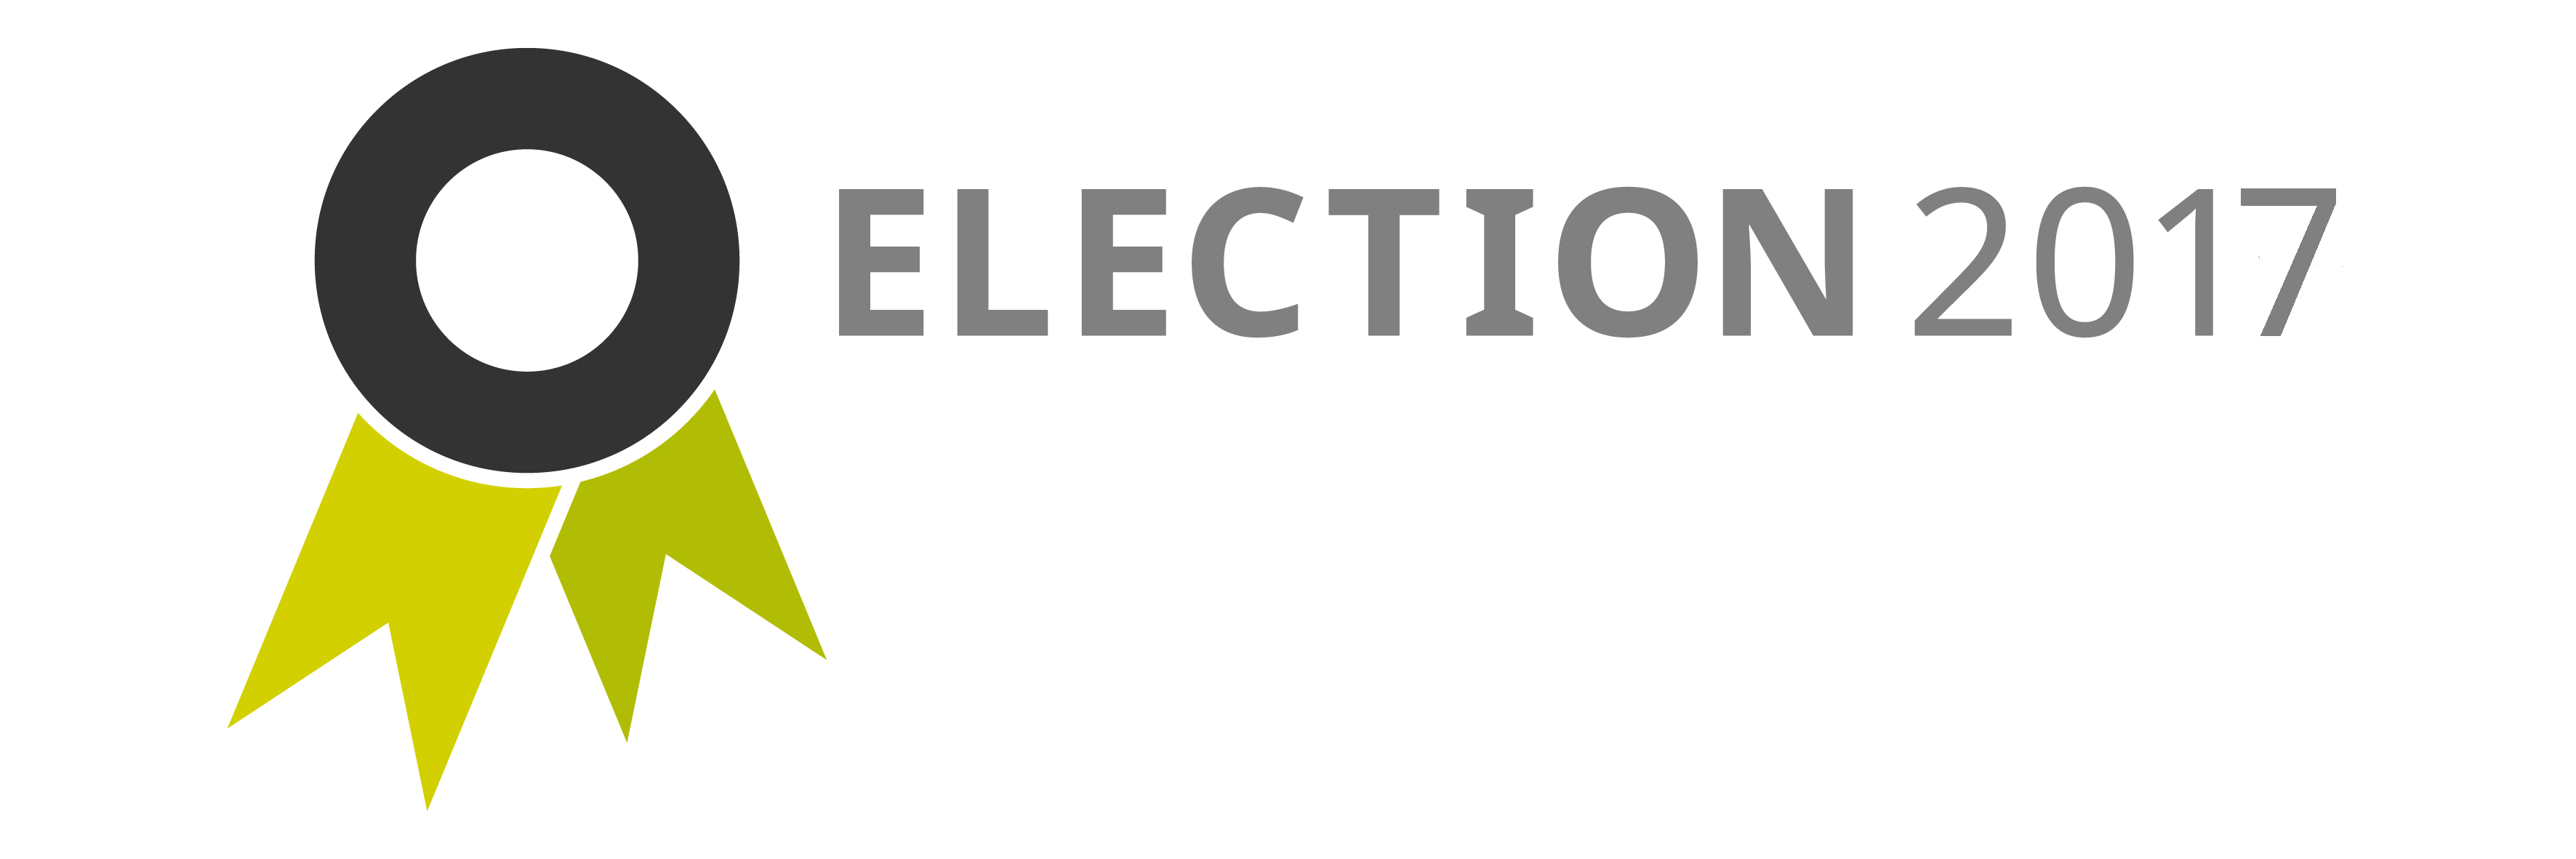 election website